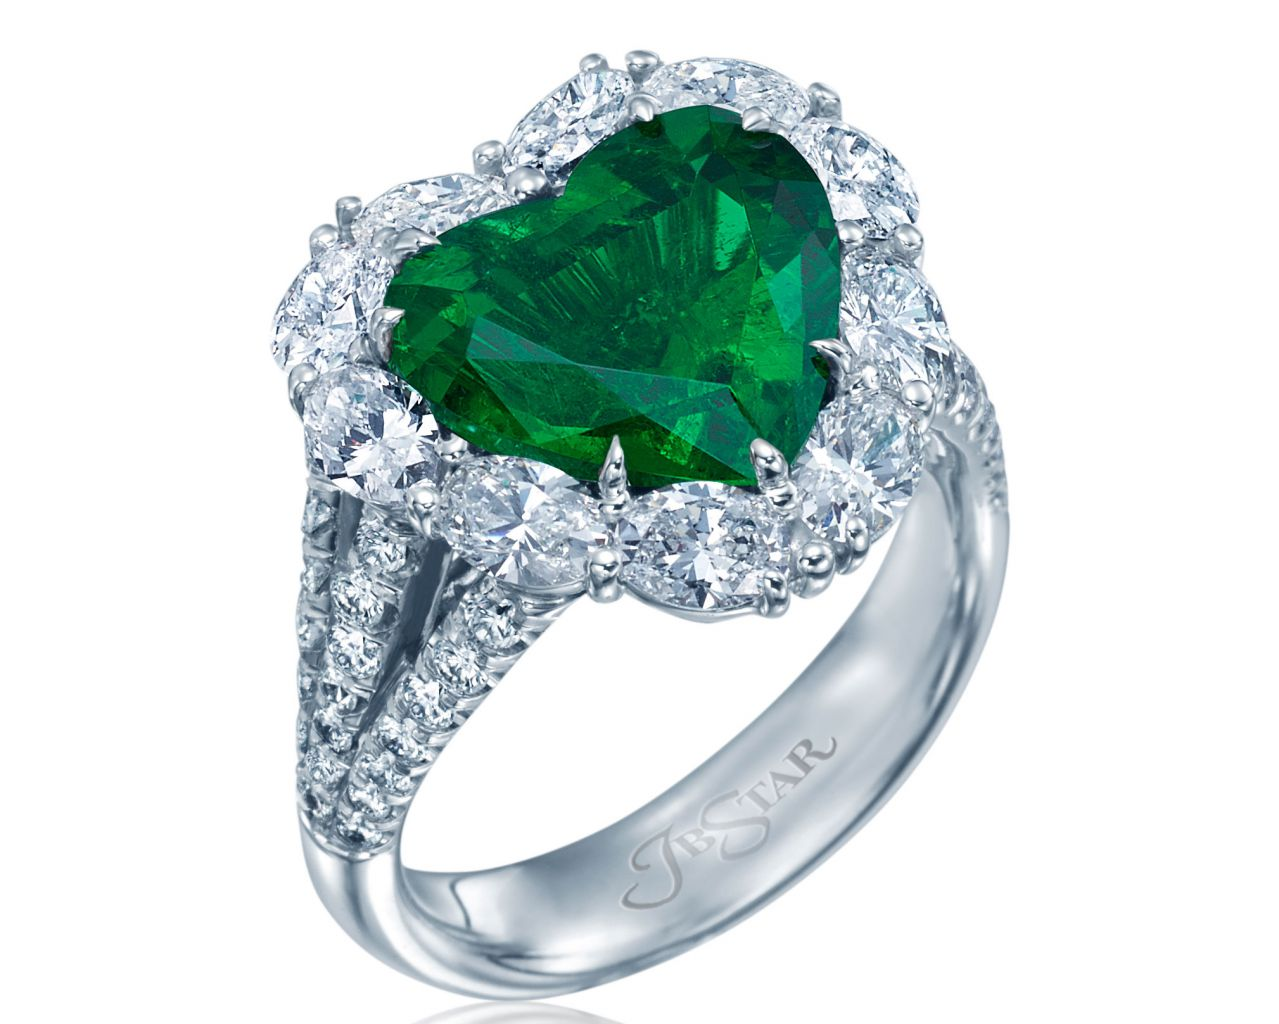 JB Star emerald heart-shape ring with diamonds